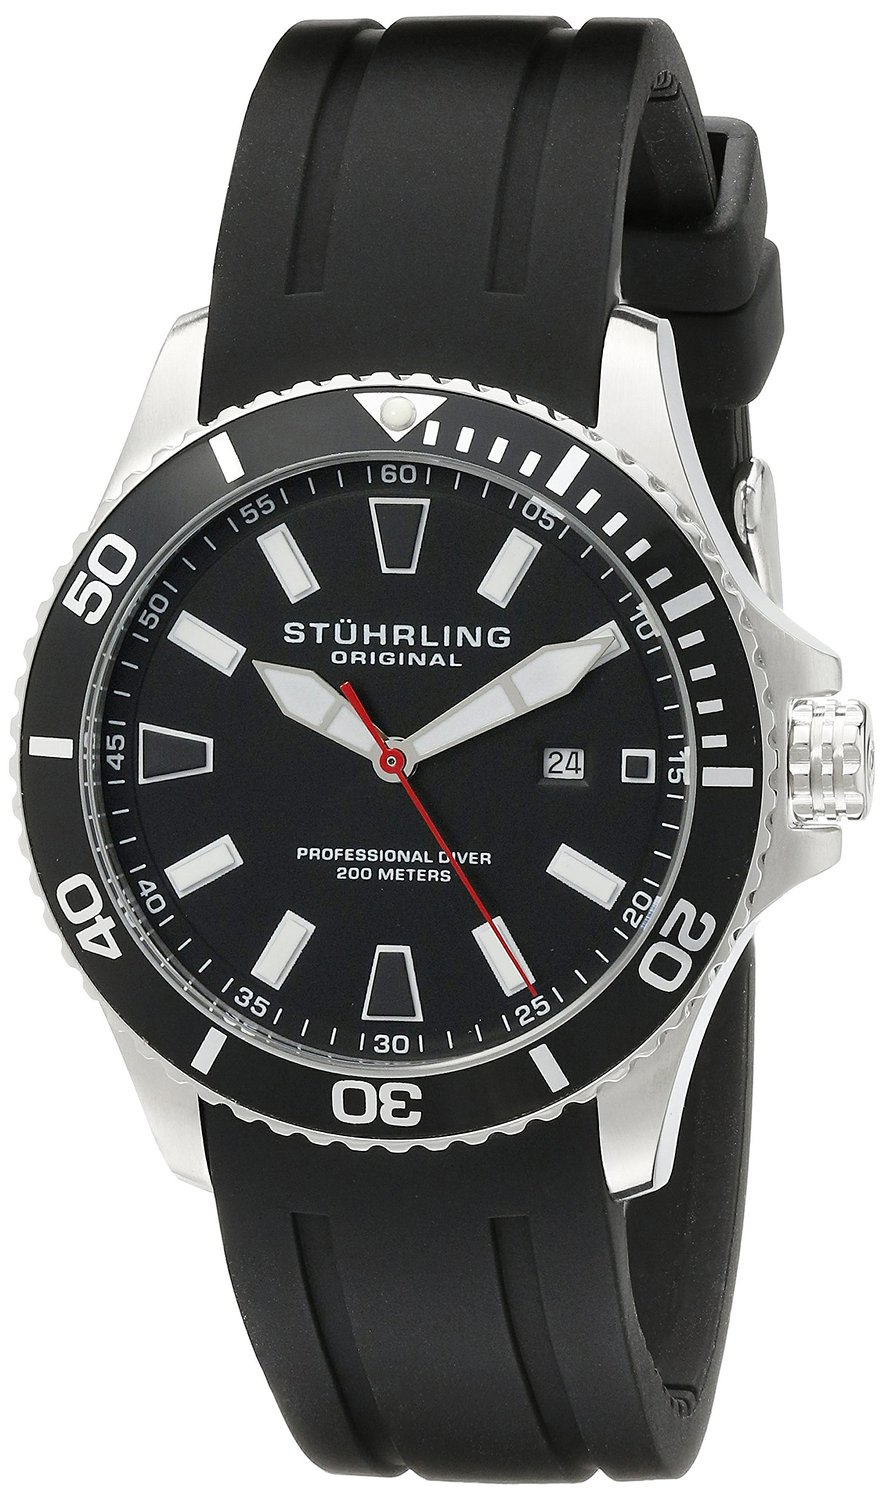 6a366ab3f09 Get Quotations · Stuhrling Original Aquadiver Regatta Mens Black Watch -  Quartz Analog Swim Sports Watch - Black Dial